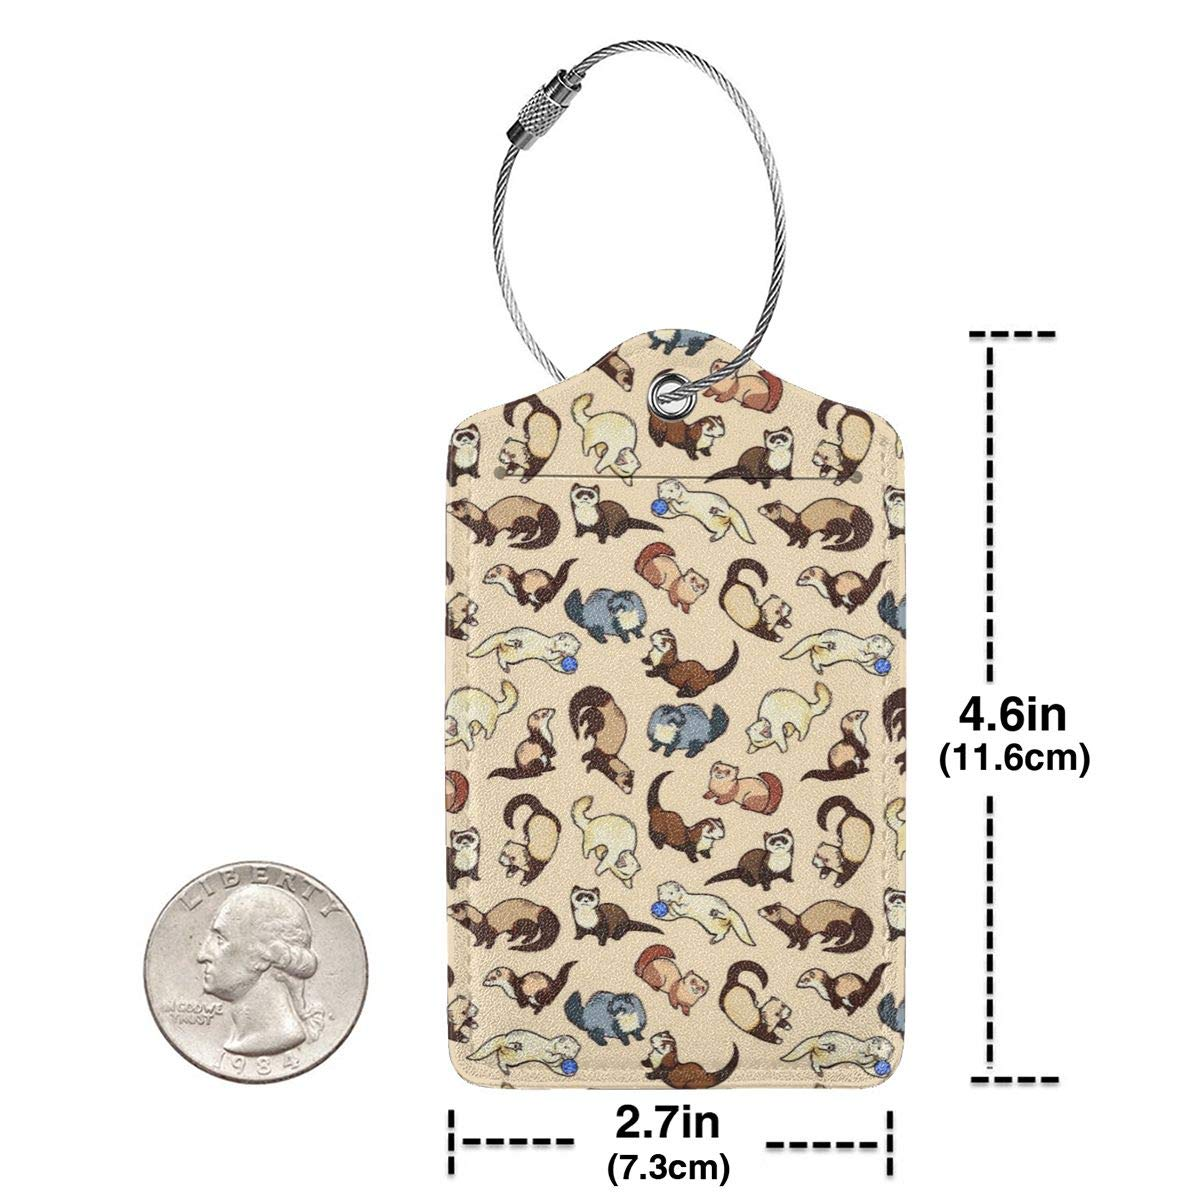 Adorable Ferret Pattern Leather Luggage Tags Personalized Address Card With Privacy Flap